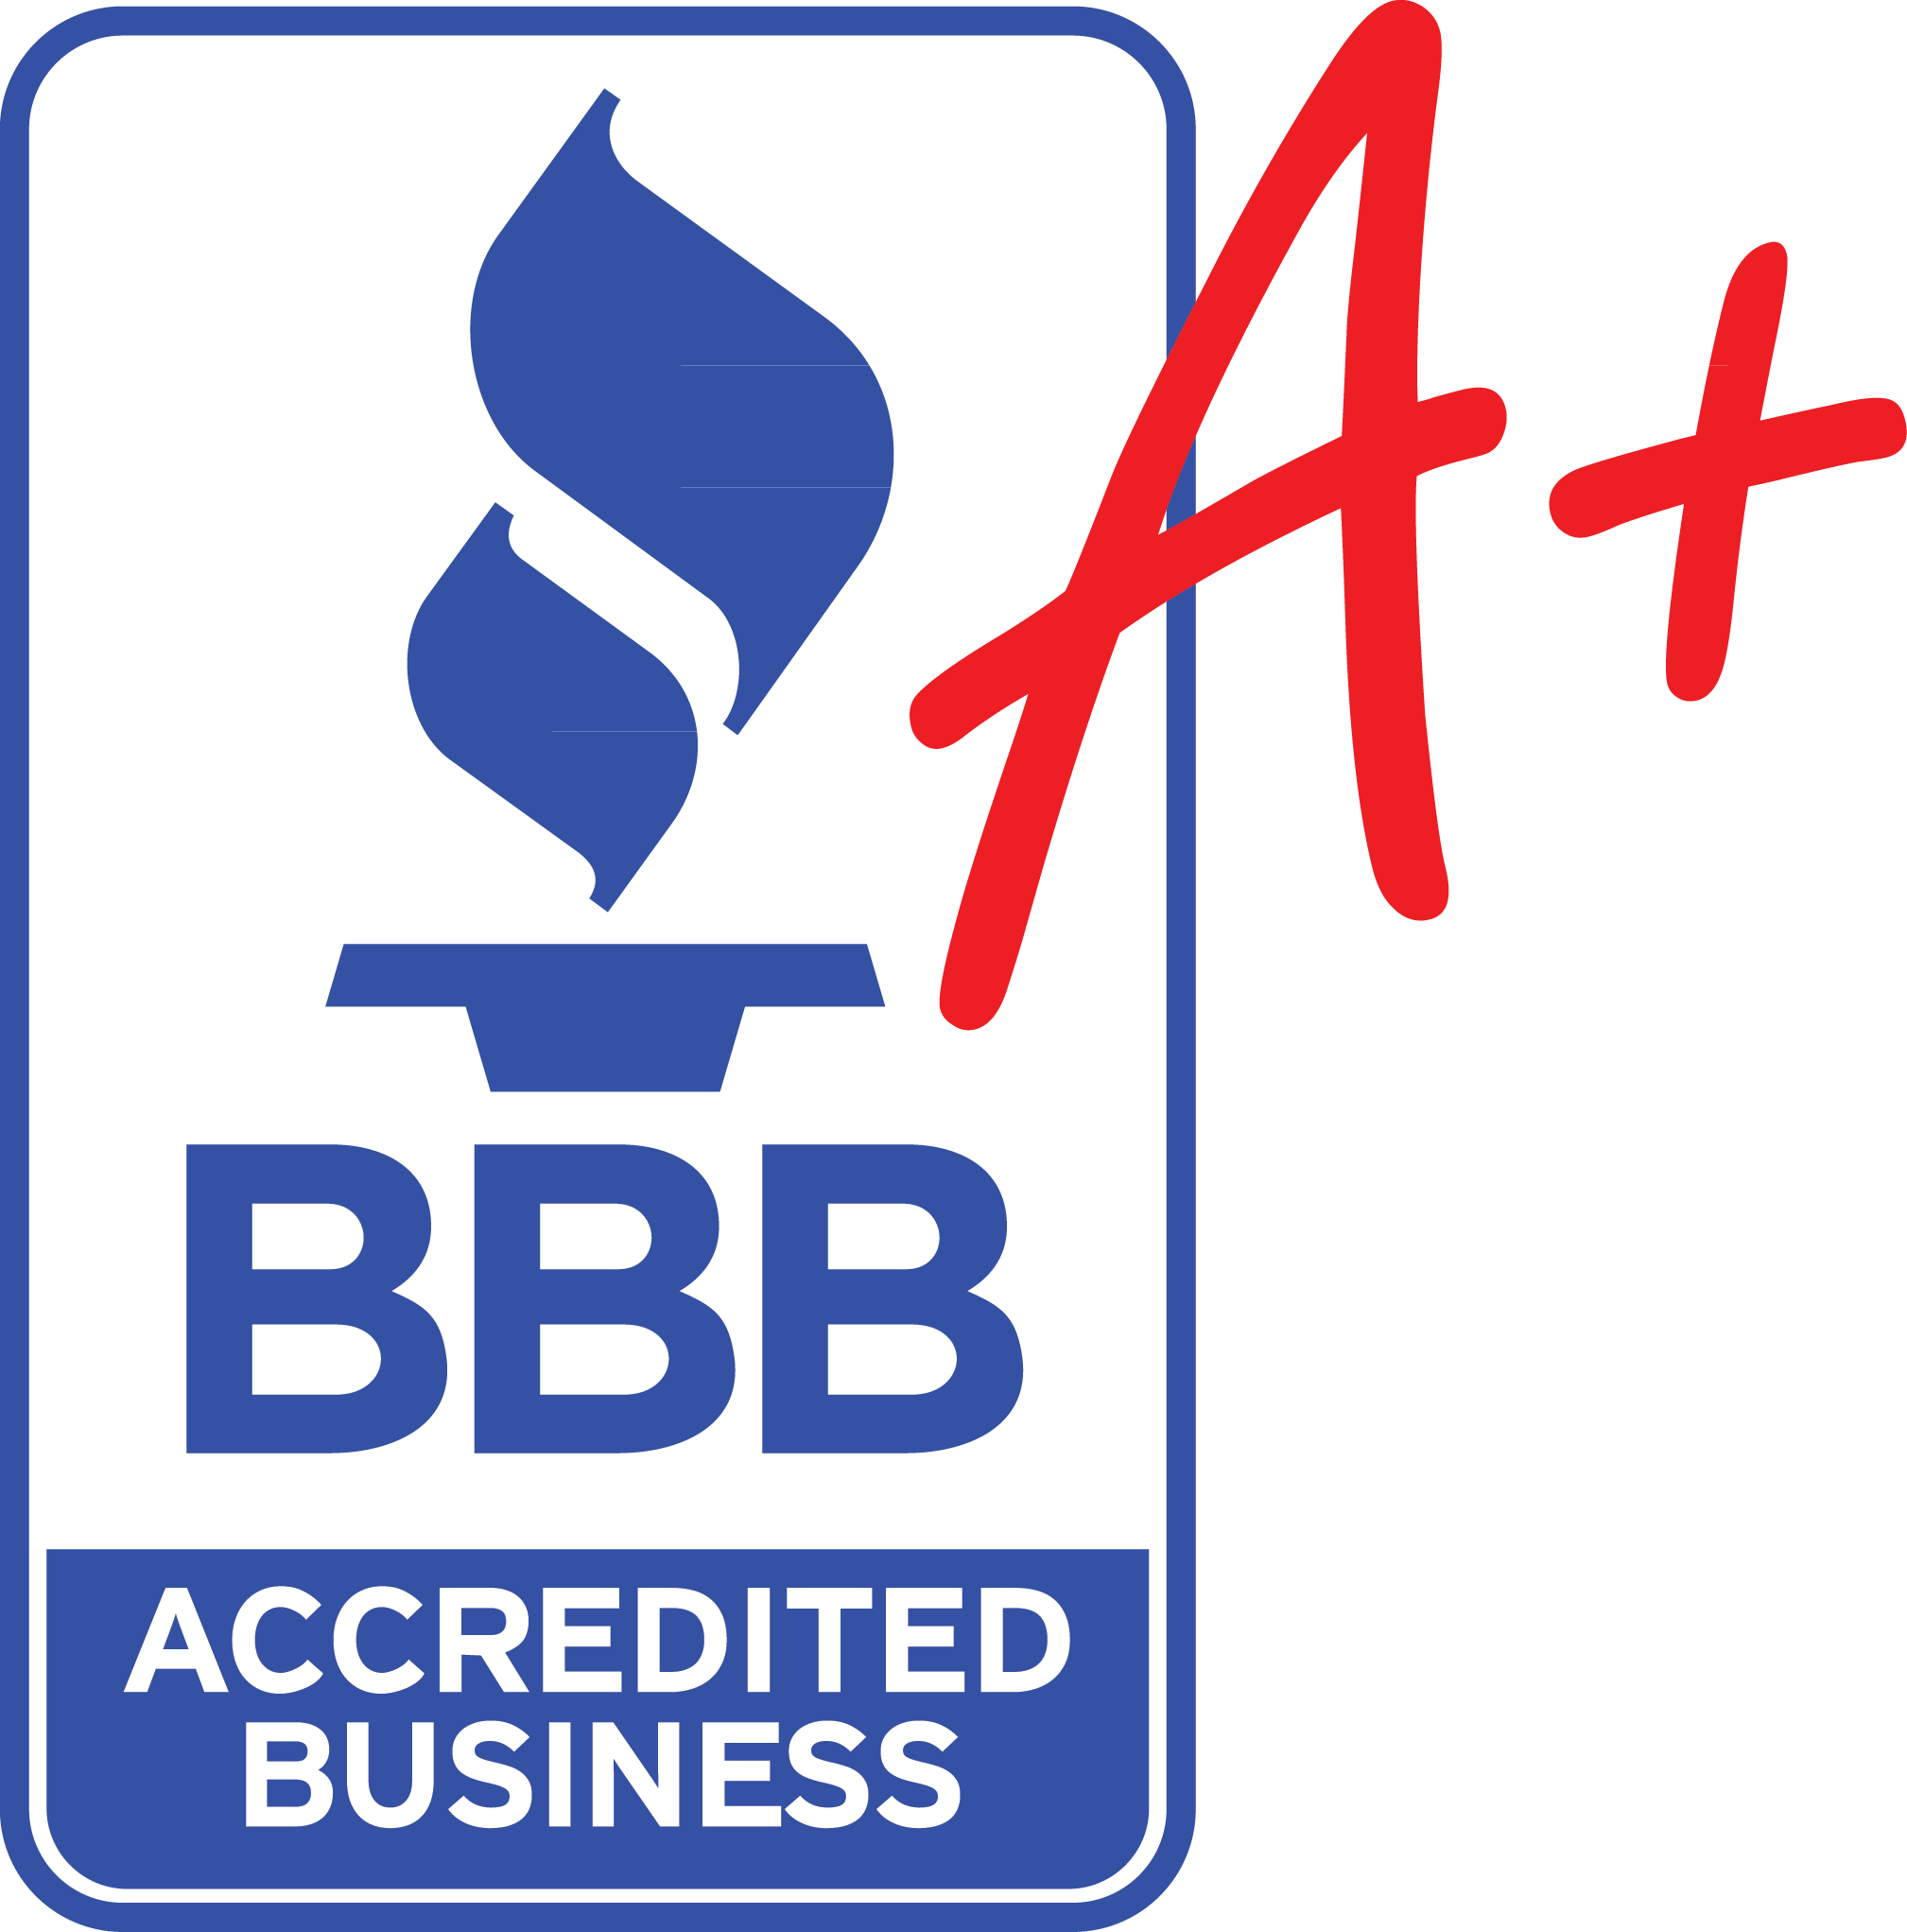 better business A plus rating